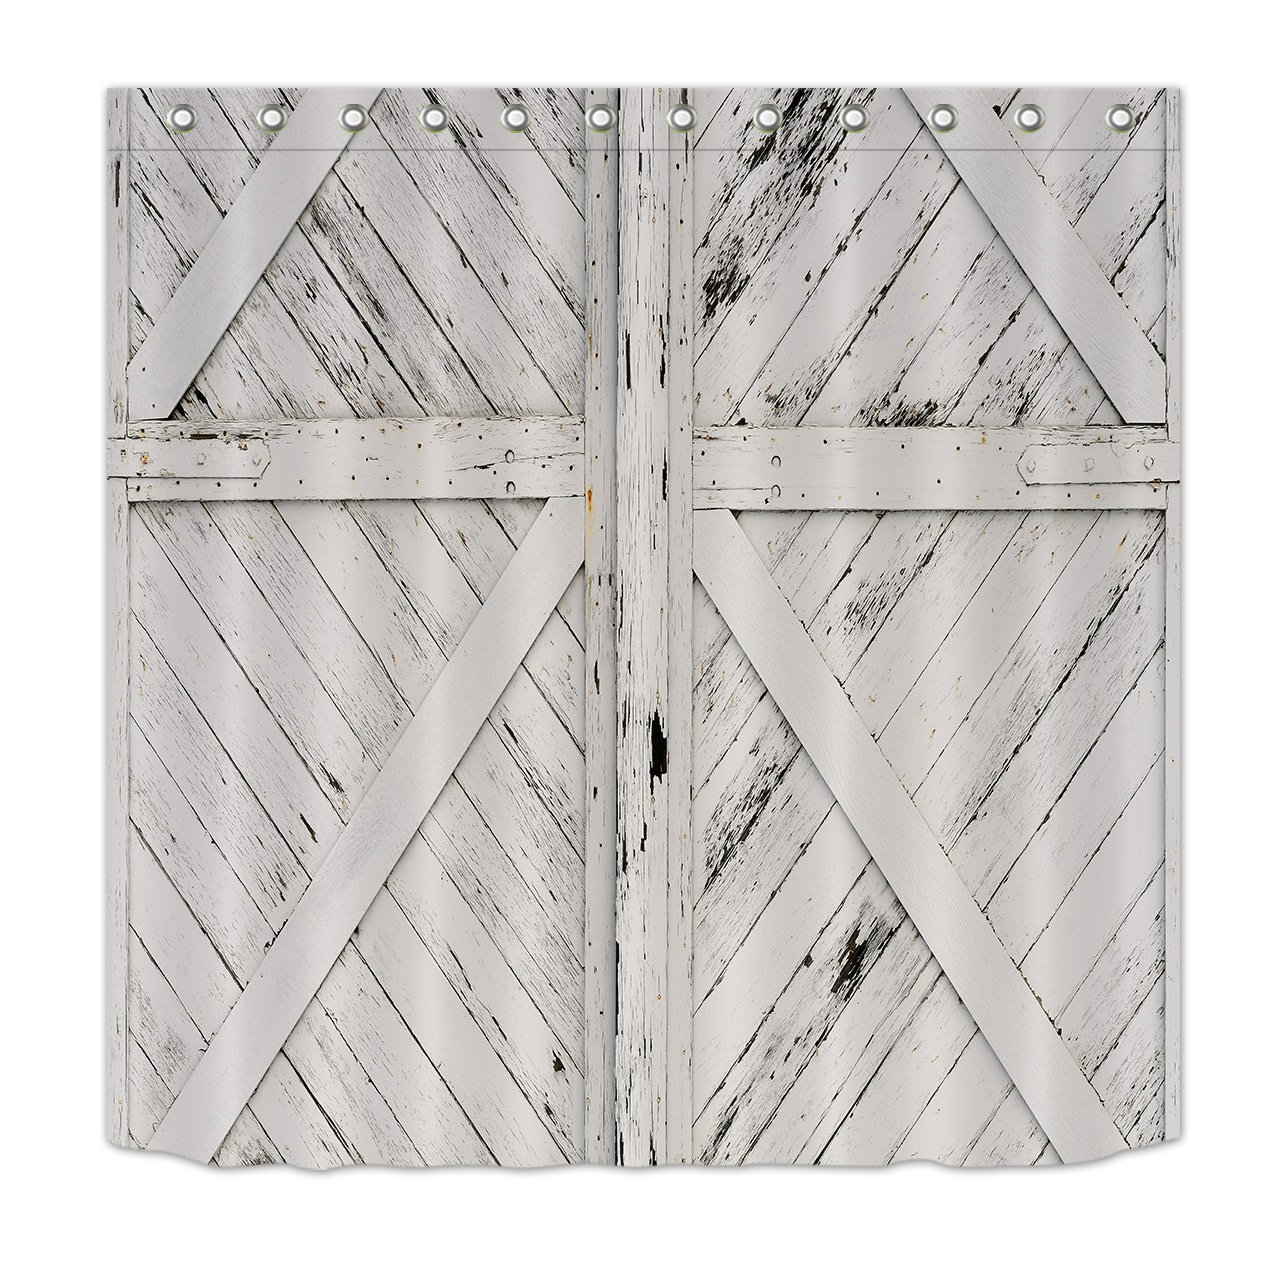 Rustic Barn Door White Painted Barn Wood Decor Shower Curtain for Bathroom by LB, Western Country Theme House Decor, Mildew Resistant Waterproof Fabric Decor Curtain, 72 x 72 Inch